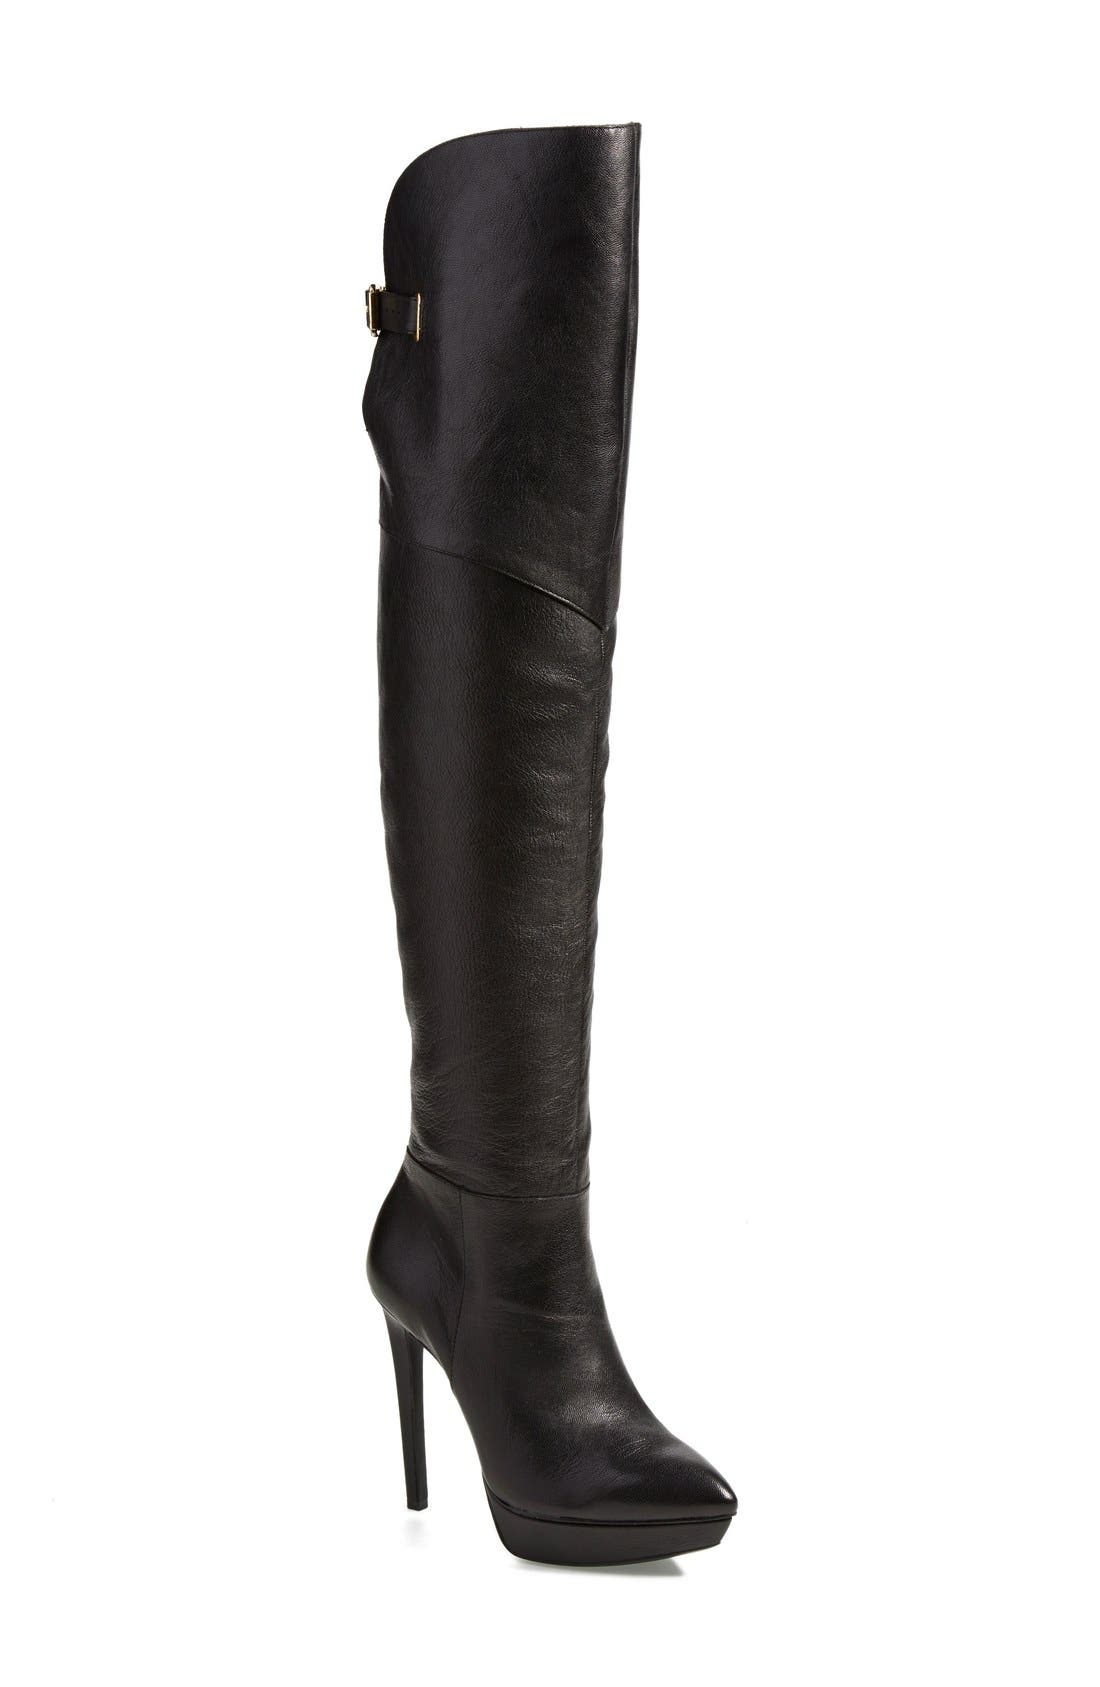 JESSICA SIMPSON, 'Valentia' Over the Knee Platform Boot, Main thumbnail 1, color, 001